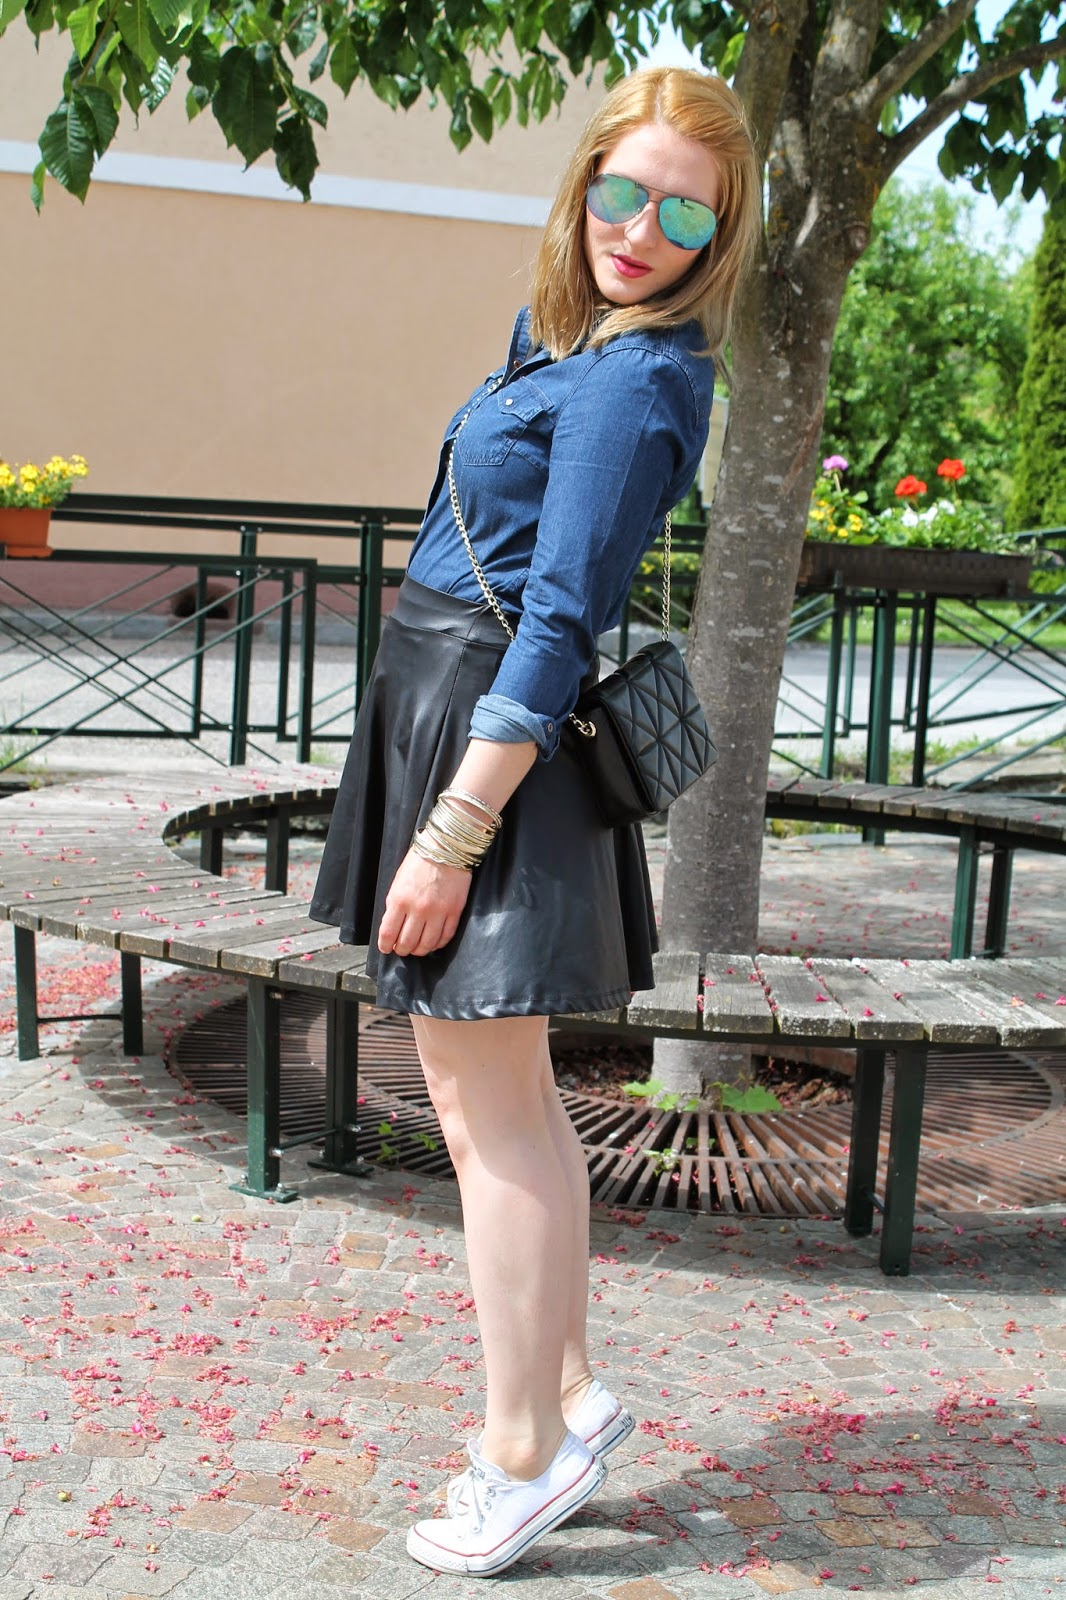 Fashionblogger Austria / Österreich / Deutsch / German / Kärnten / Carinthia / Klagenfurt / Köttmannsdorf / Spring Look / Classy / Edgy / Summer / Summer Style 2014 / Summer Look / Fashionista Look /  Zara / C&A/ Clockhouse / Converse / H&M/ Born Pretty Shop / Skater Skirt / Leather Skirt / Jeans Blouse / Mirrored Glasses /